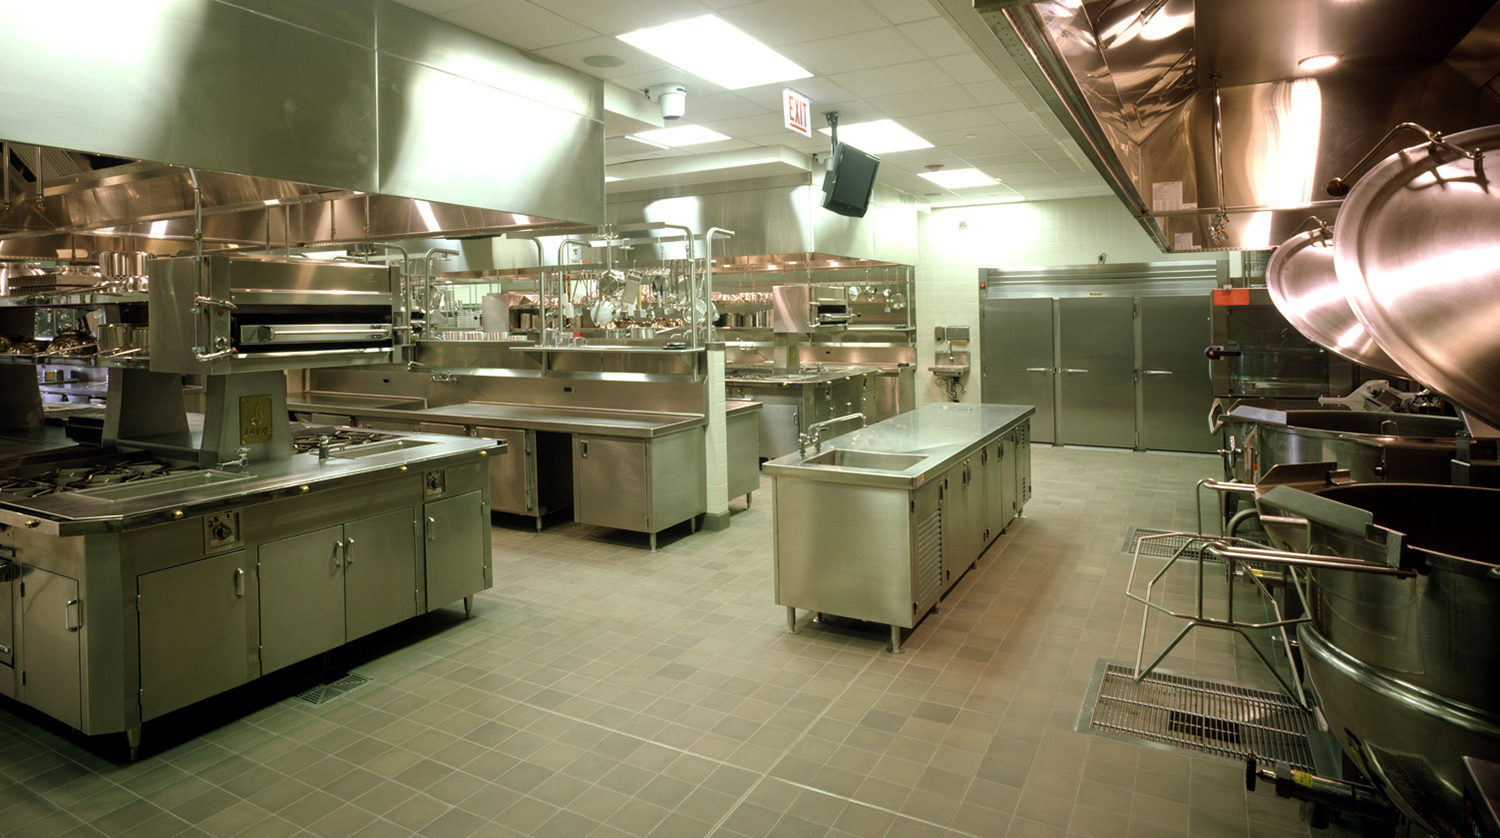 College of DuPage_ Culinary and Hospitality Center kitchens